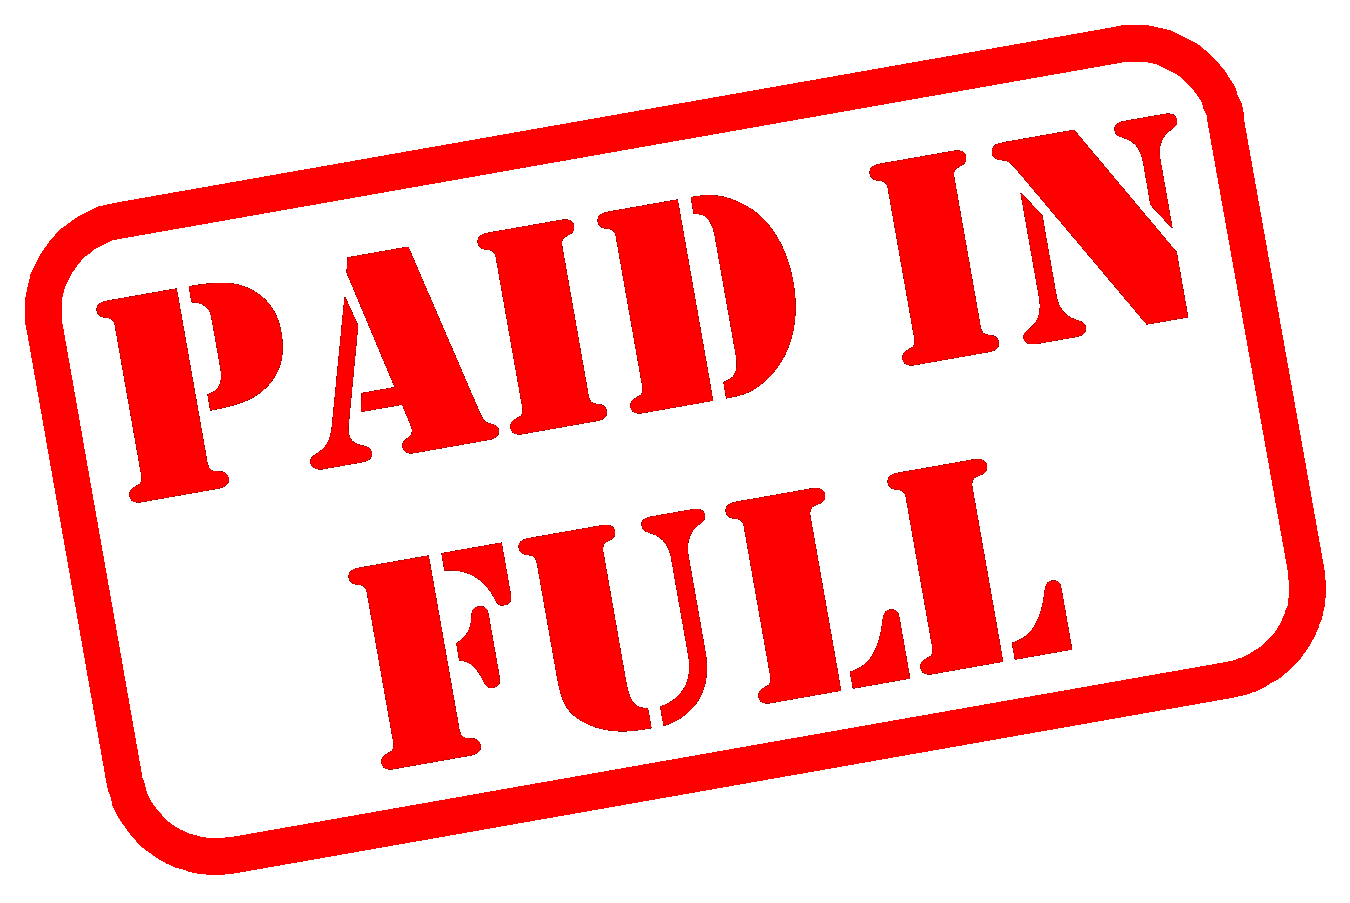 ... Paid In Full Stamp Clipart ...-... Paid In Full Stamp Clipart ...-9